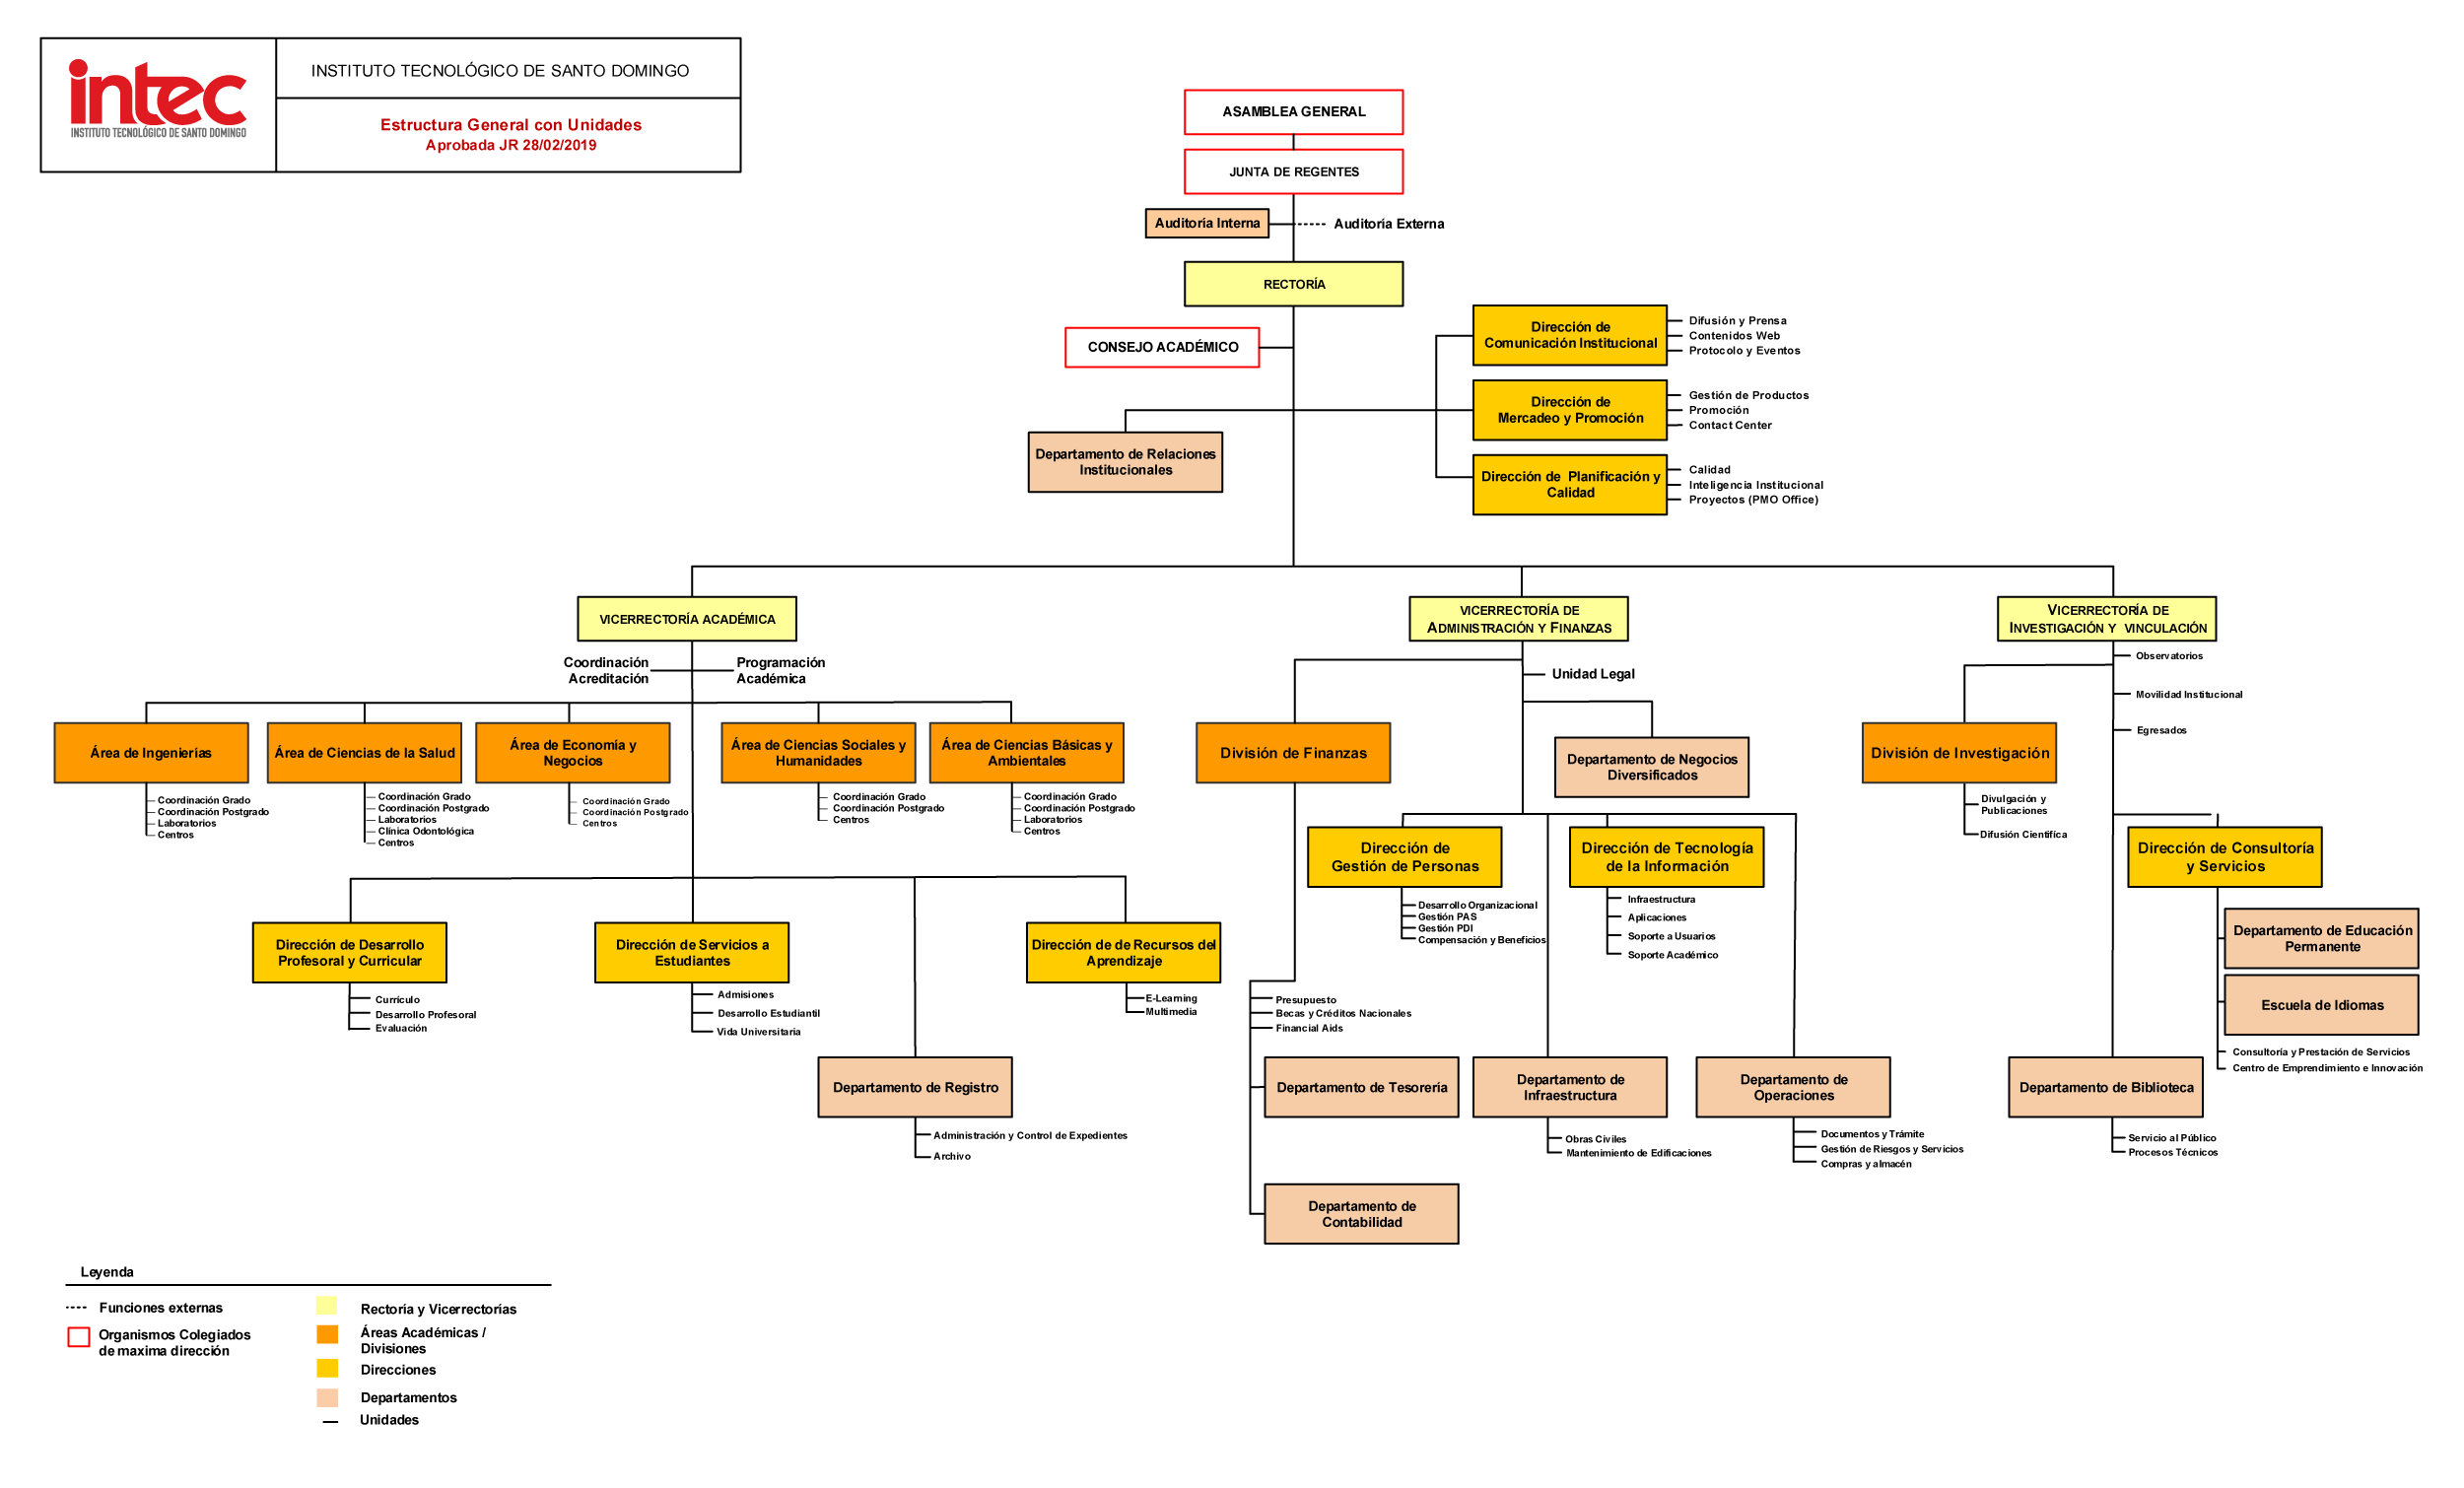 Institutional Organization Chart